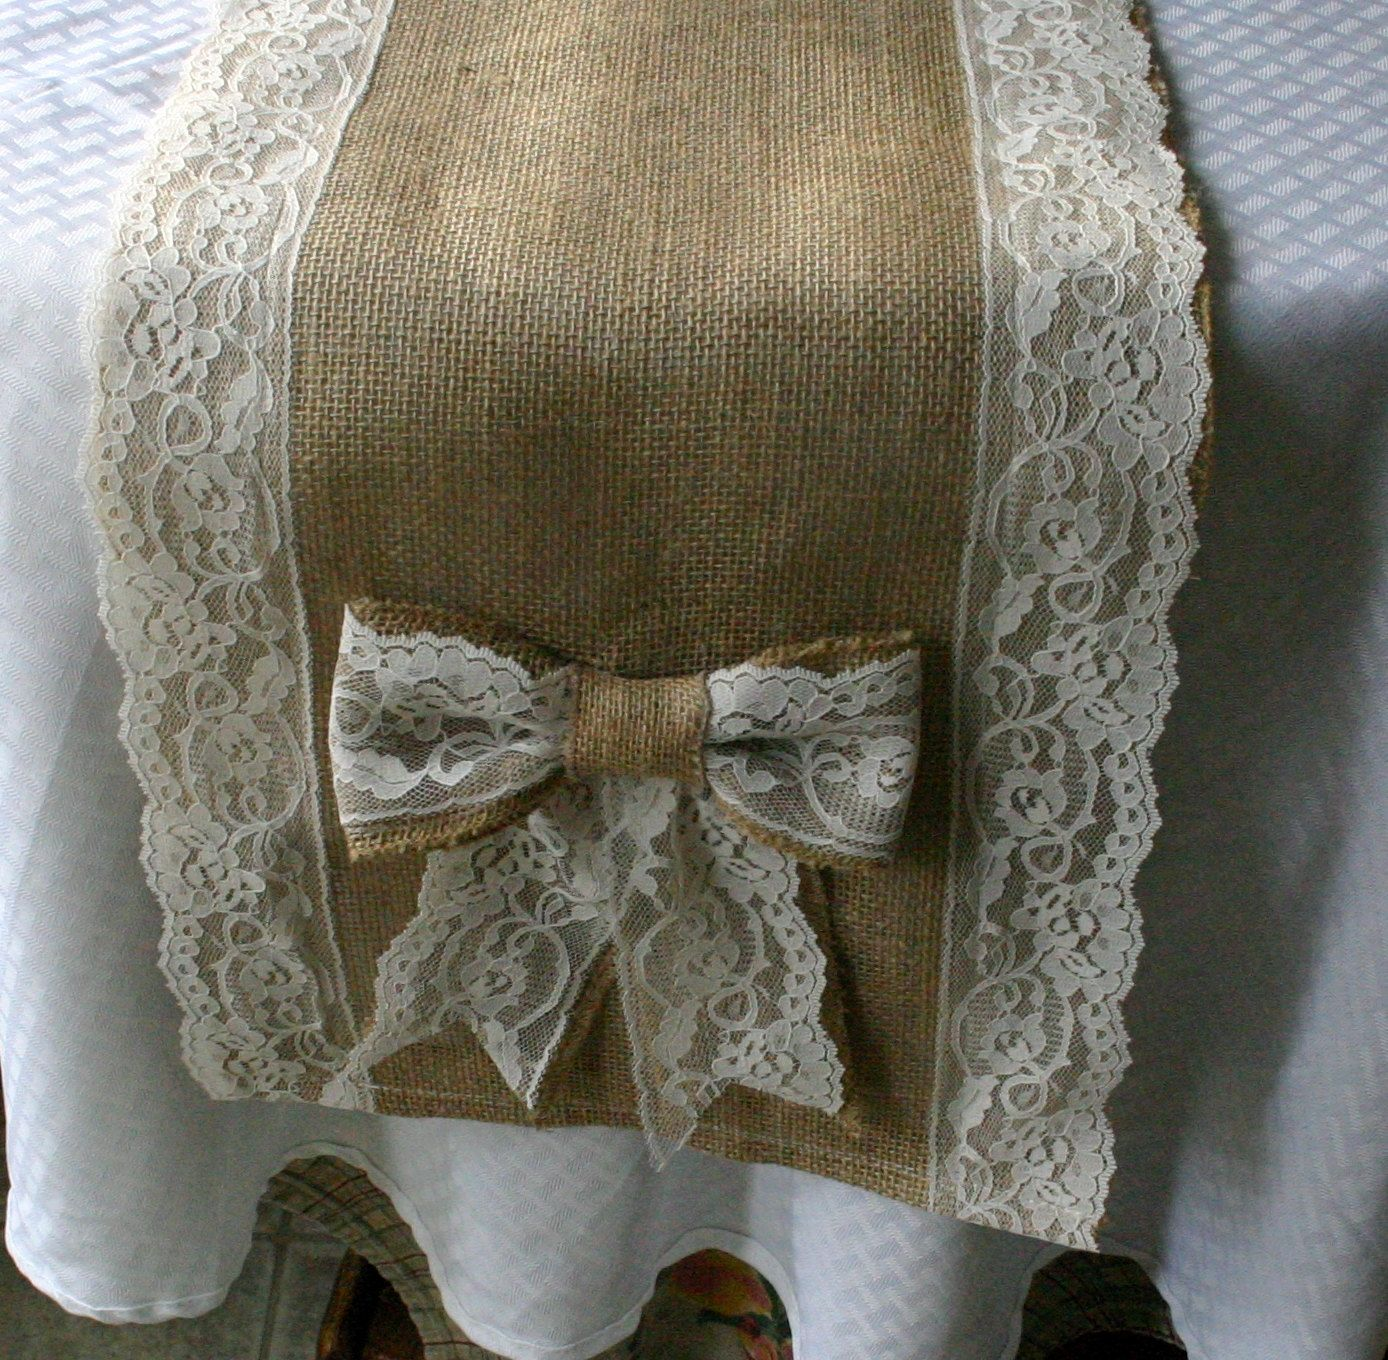 Shabby Chic Wedding Table Decorations: Burlap And Lace Table Runners, French